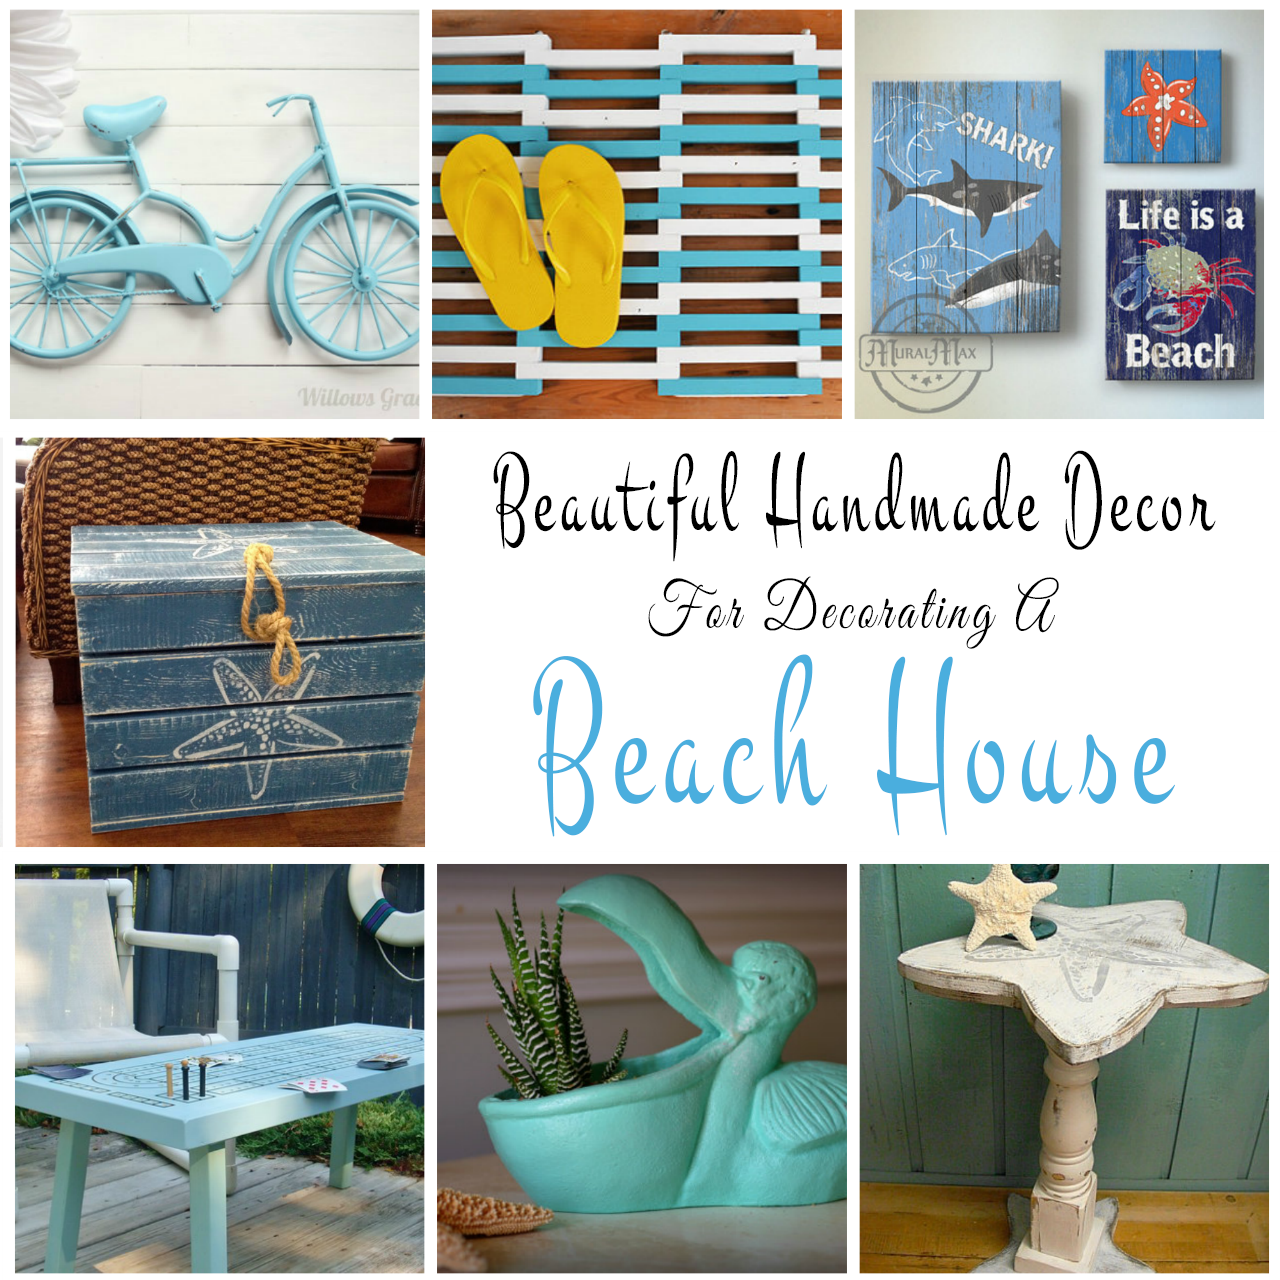 25 Handmade Decor Ideas For Decorating A Beach House • Glitter \'N Spice